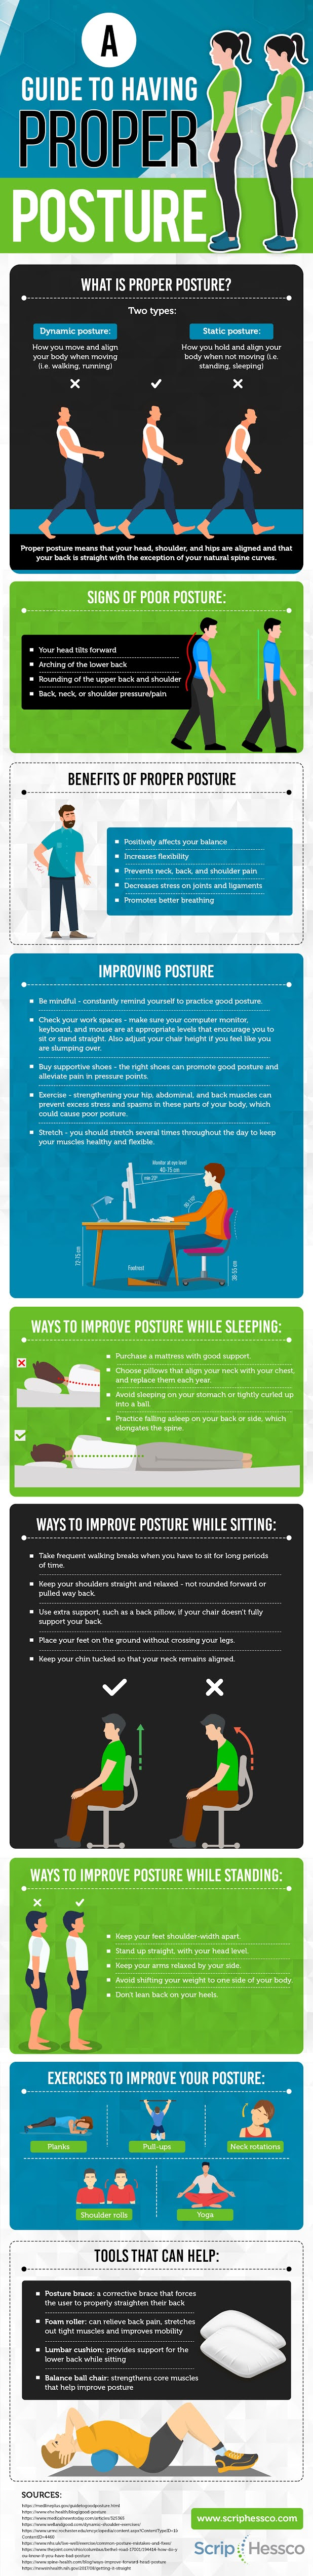 A Guide to Having Proper Posture #infographic #Health